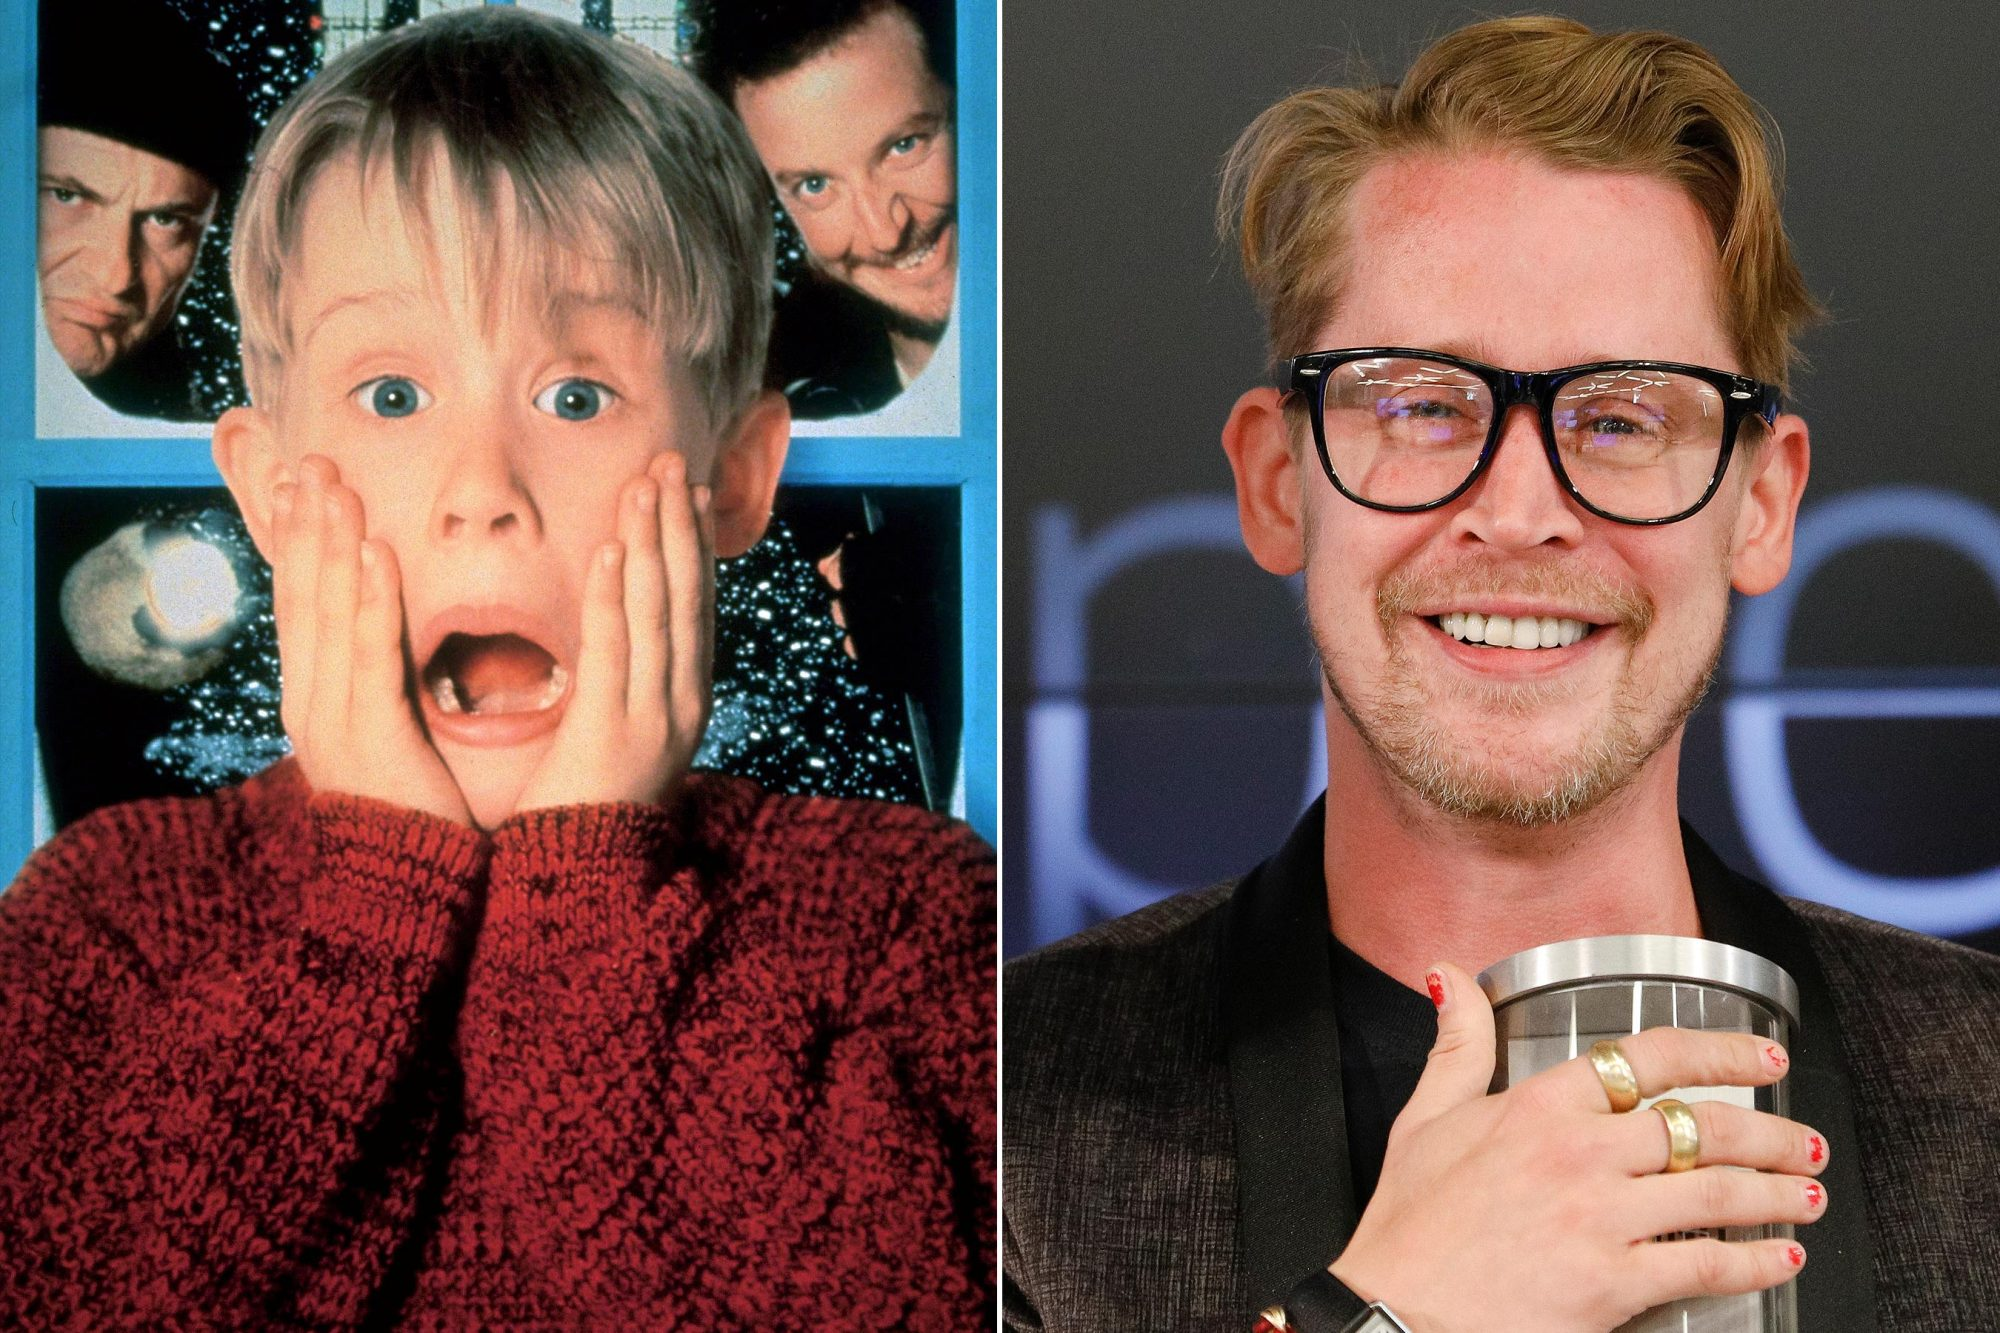 Gallery: Home ALone Where Are They Now